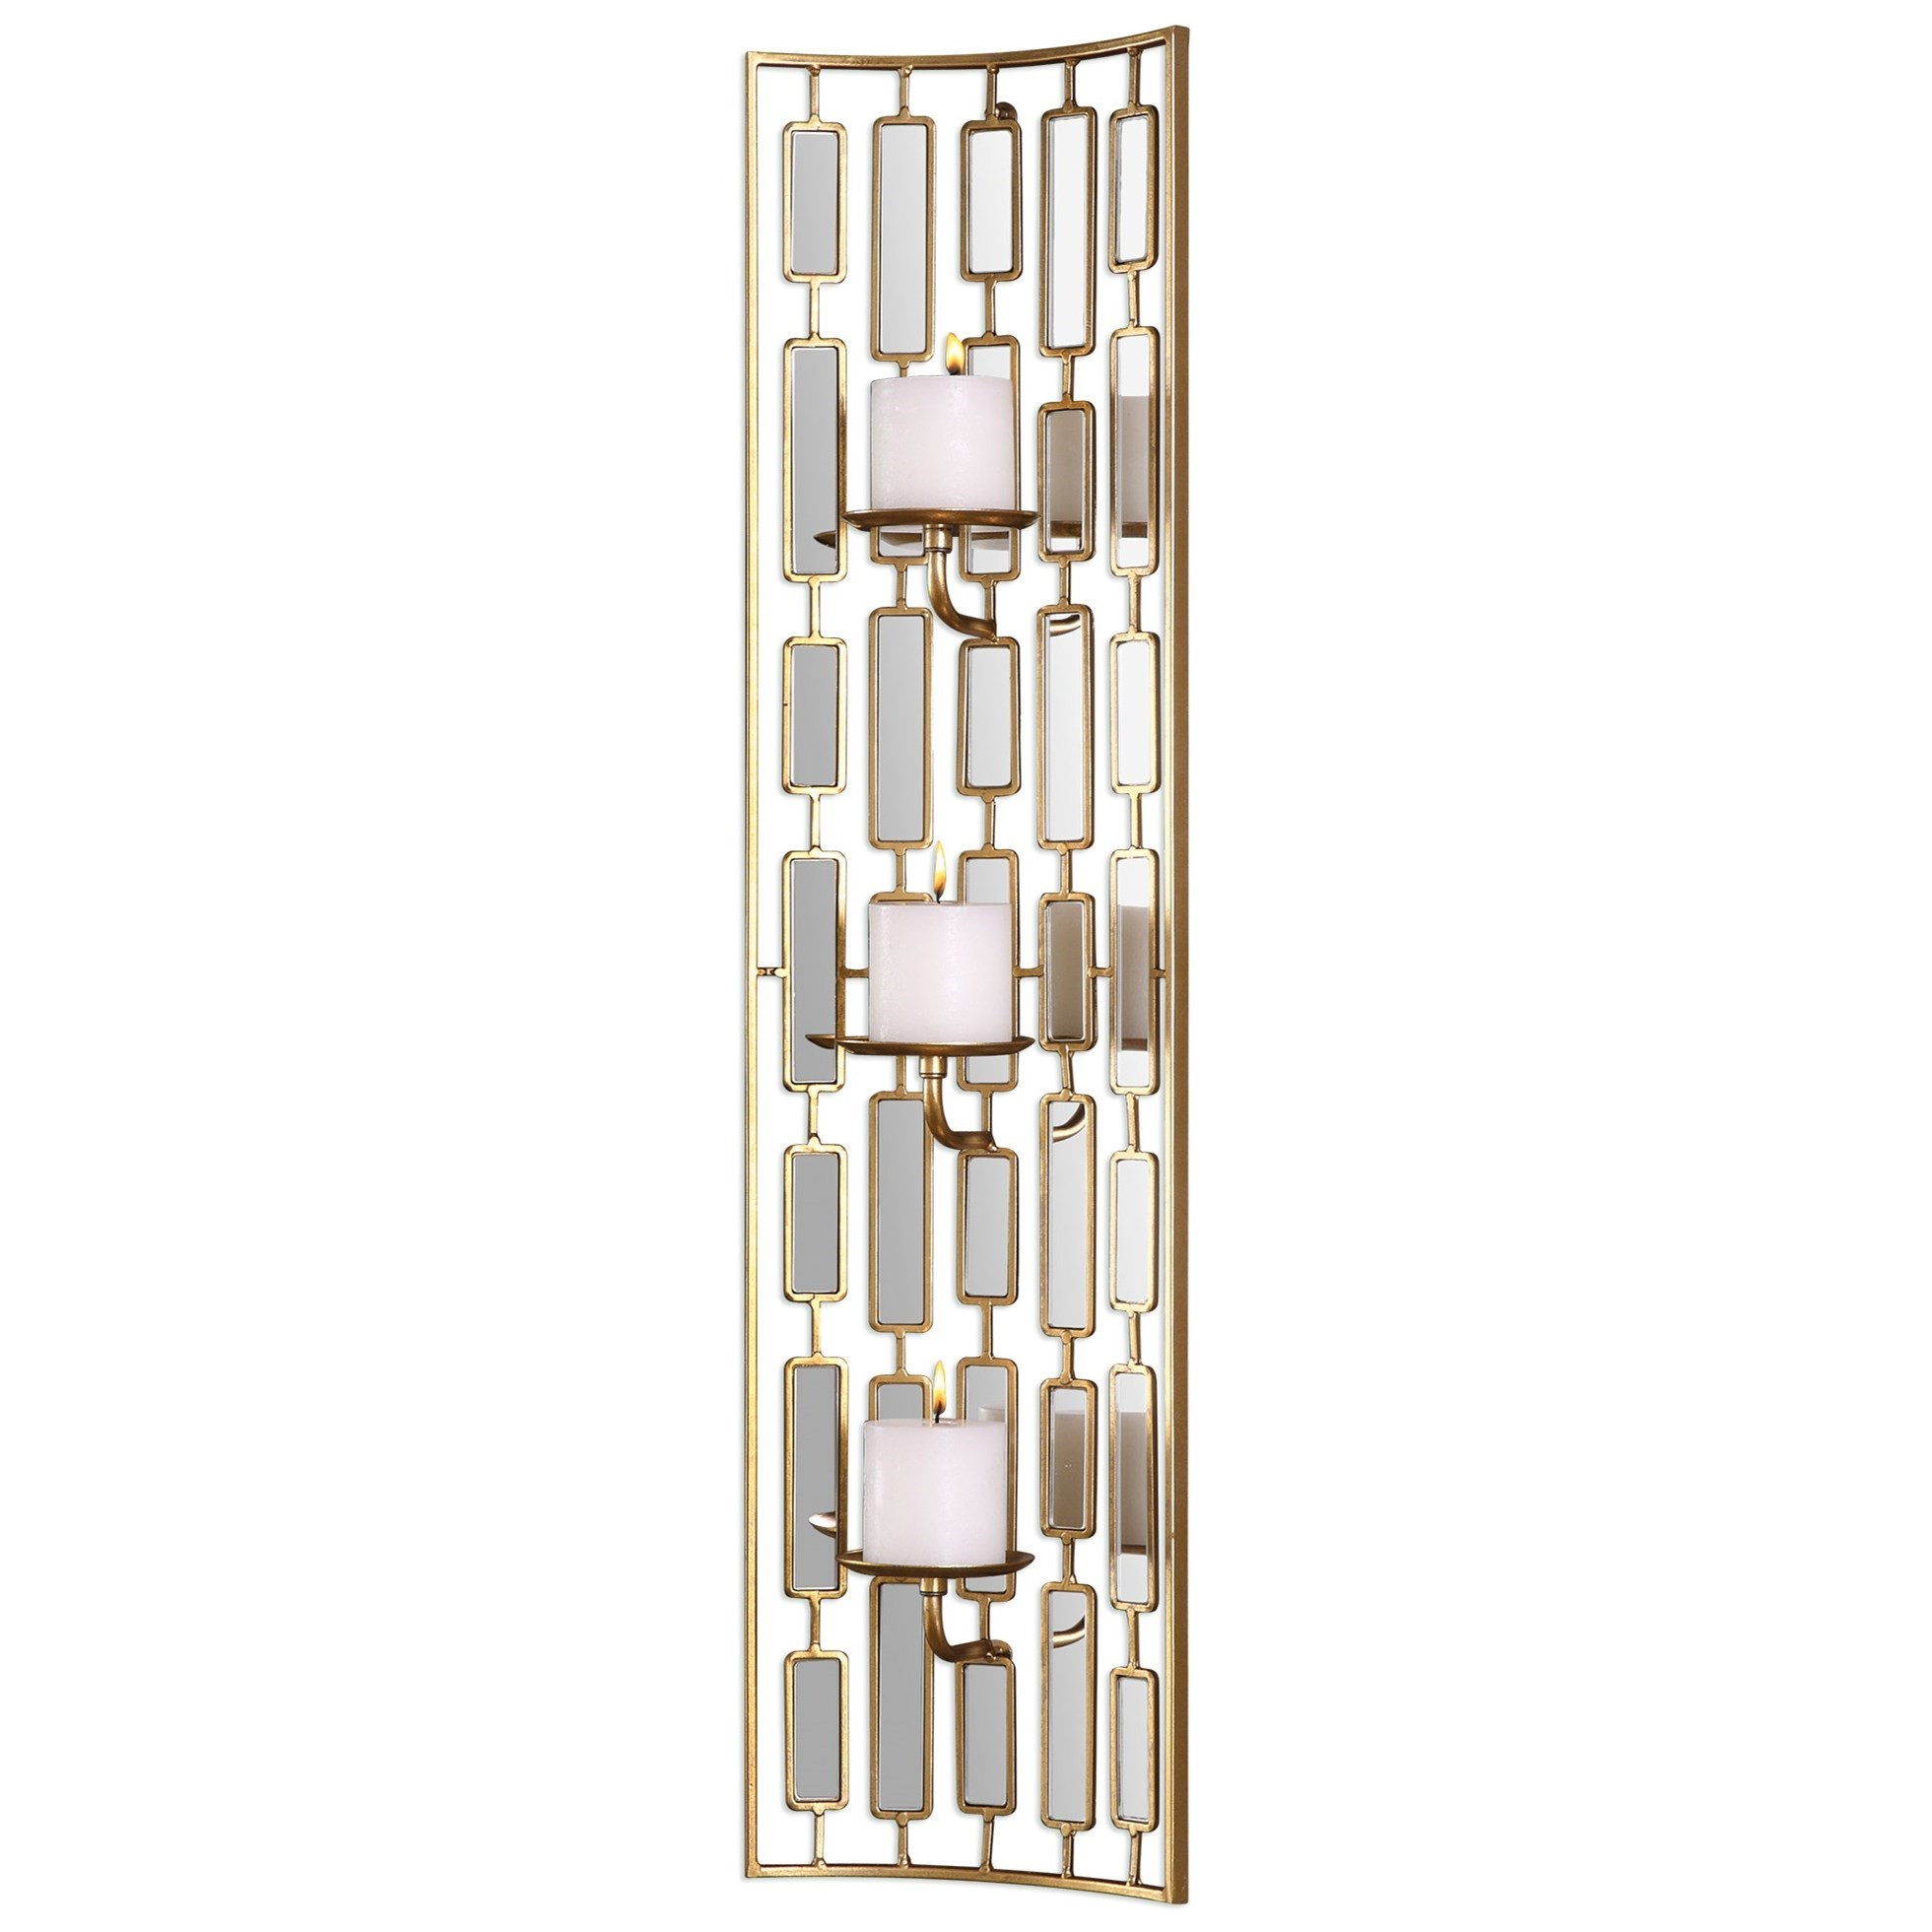 Uttermost Alternative Wall Decor Loire Wall Sconce - Item Number: 04045